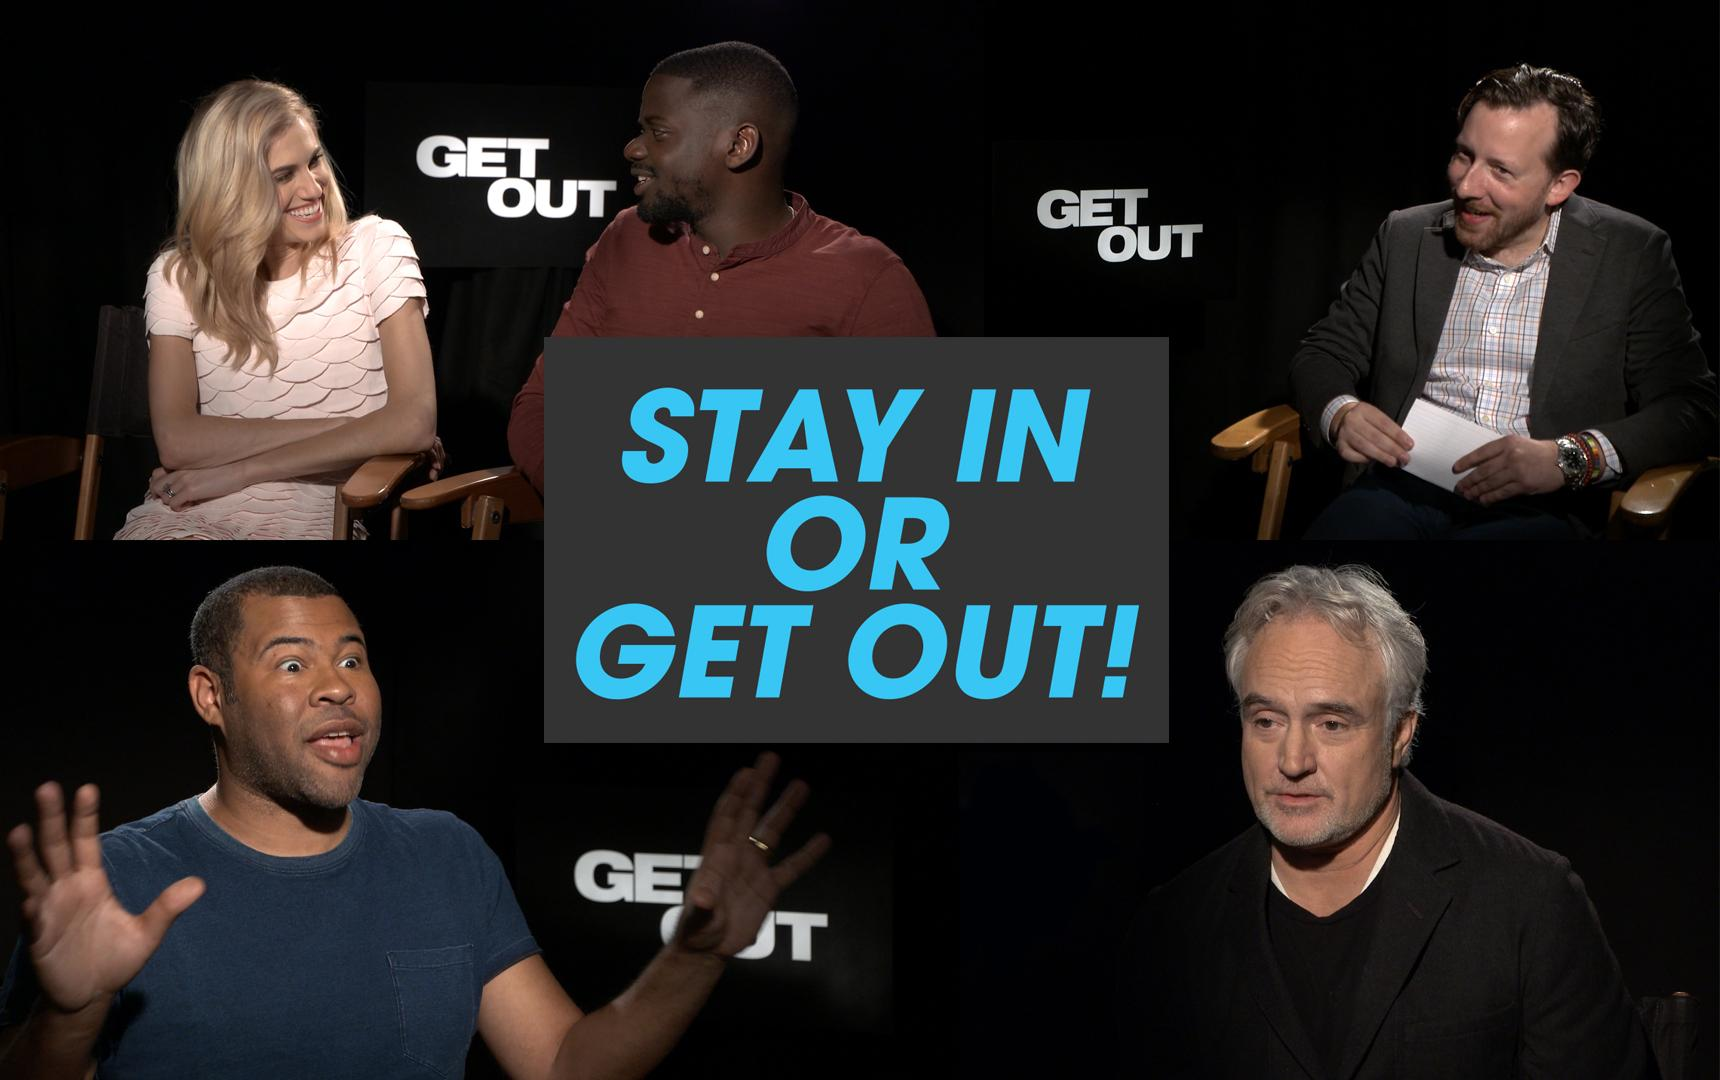 The Cast of 'Get Out' Plays 'Stay in or Get Out?'